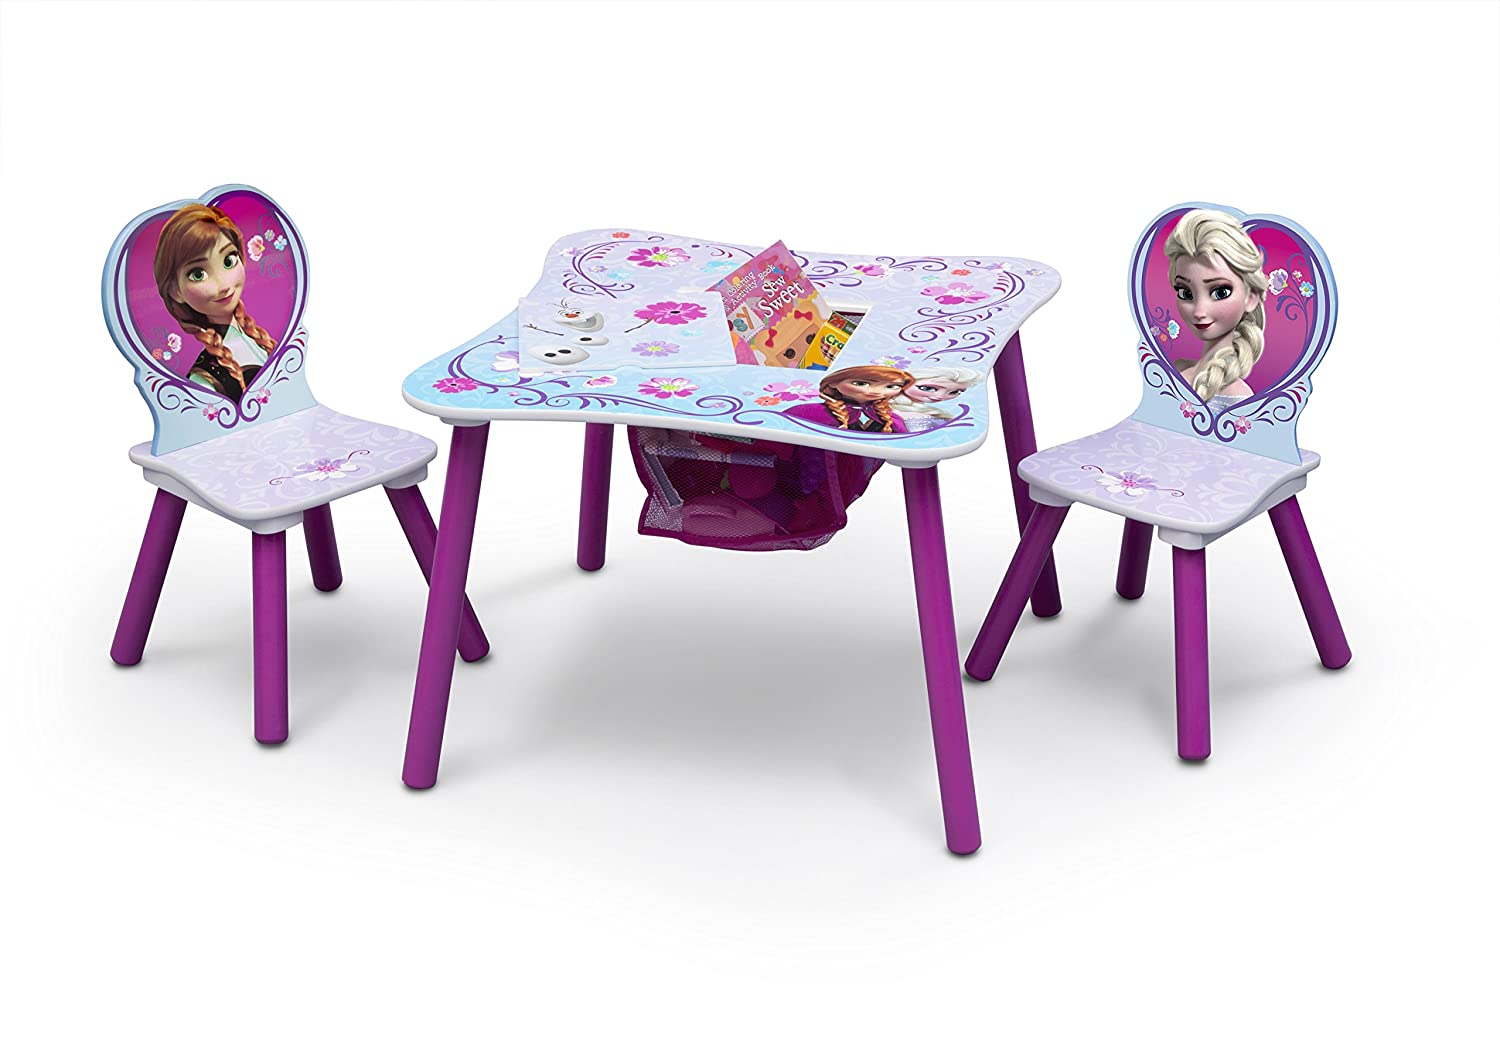 Amazon.com: Delta Children Table And Chair Set With Storage, Disney ...